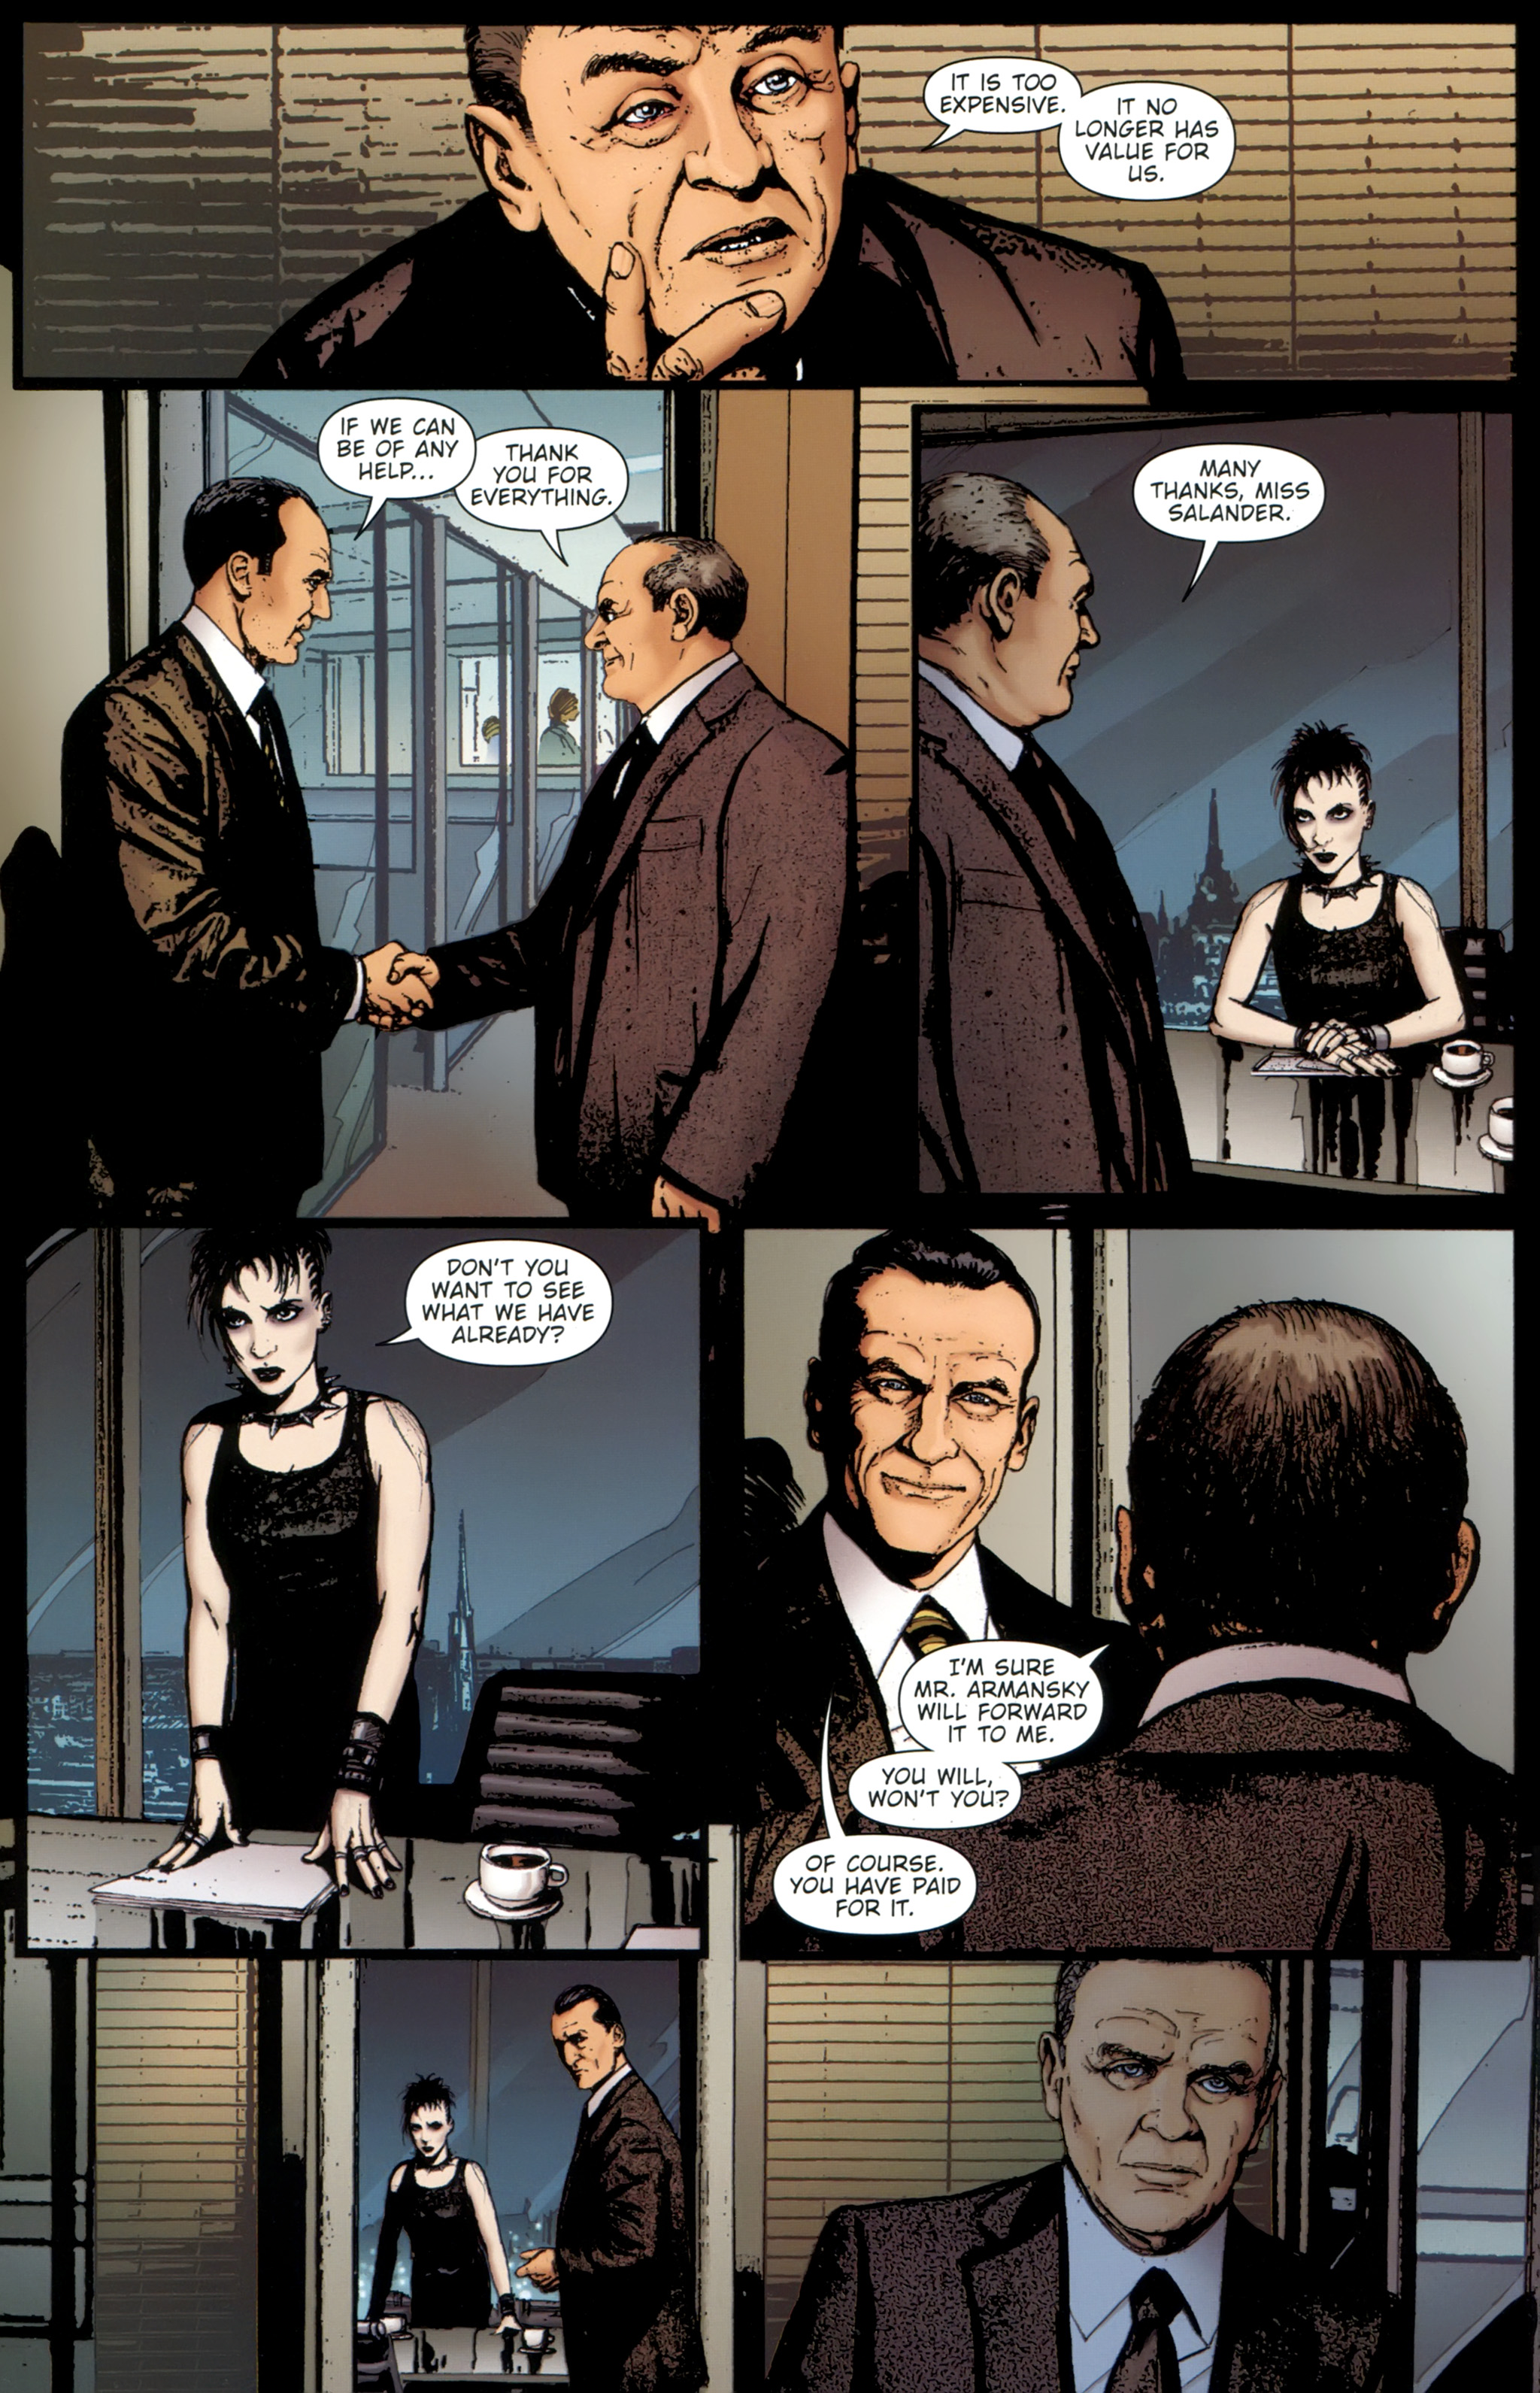 Read online The Girl With the Dragon Tattoo comic -  Issue # TPB 1 - 79